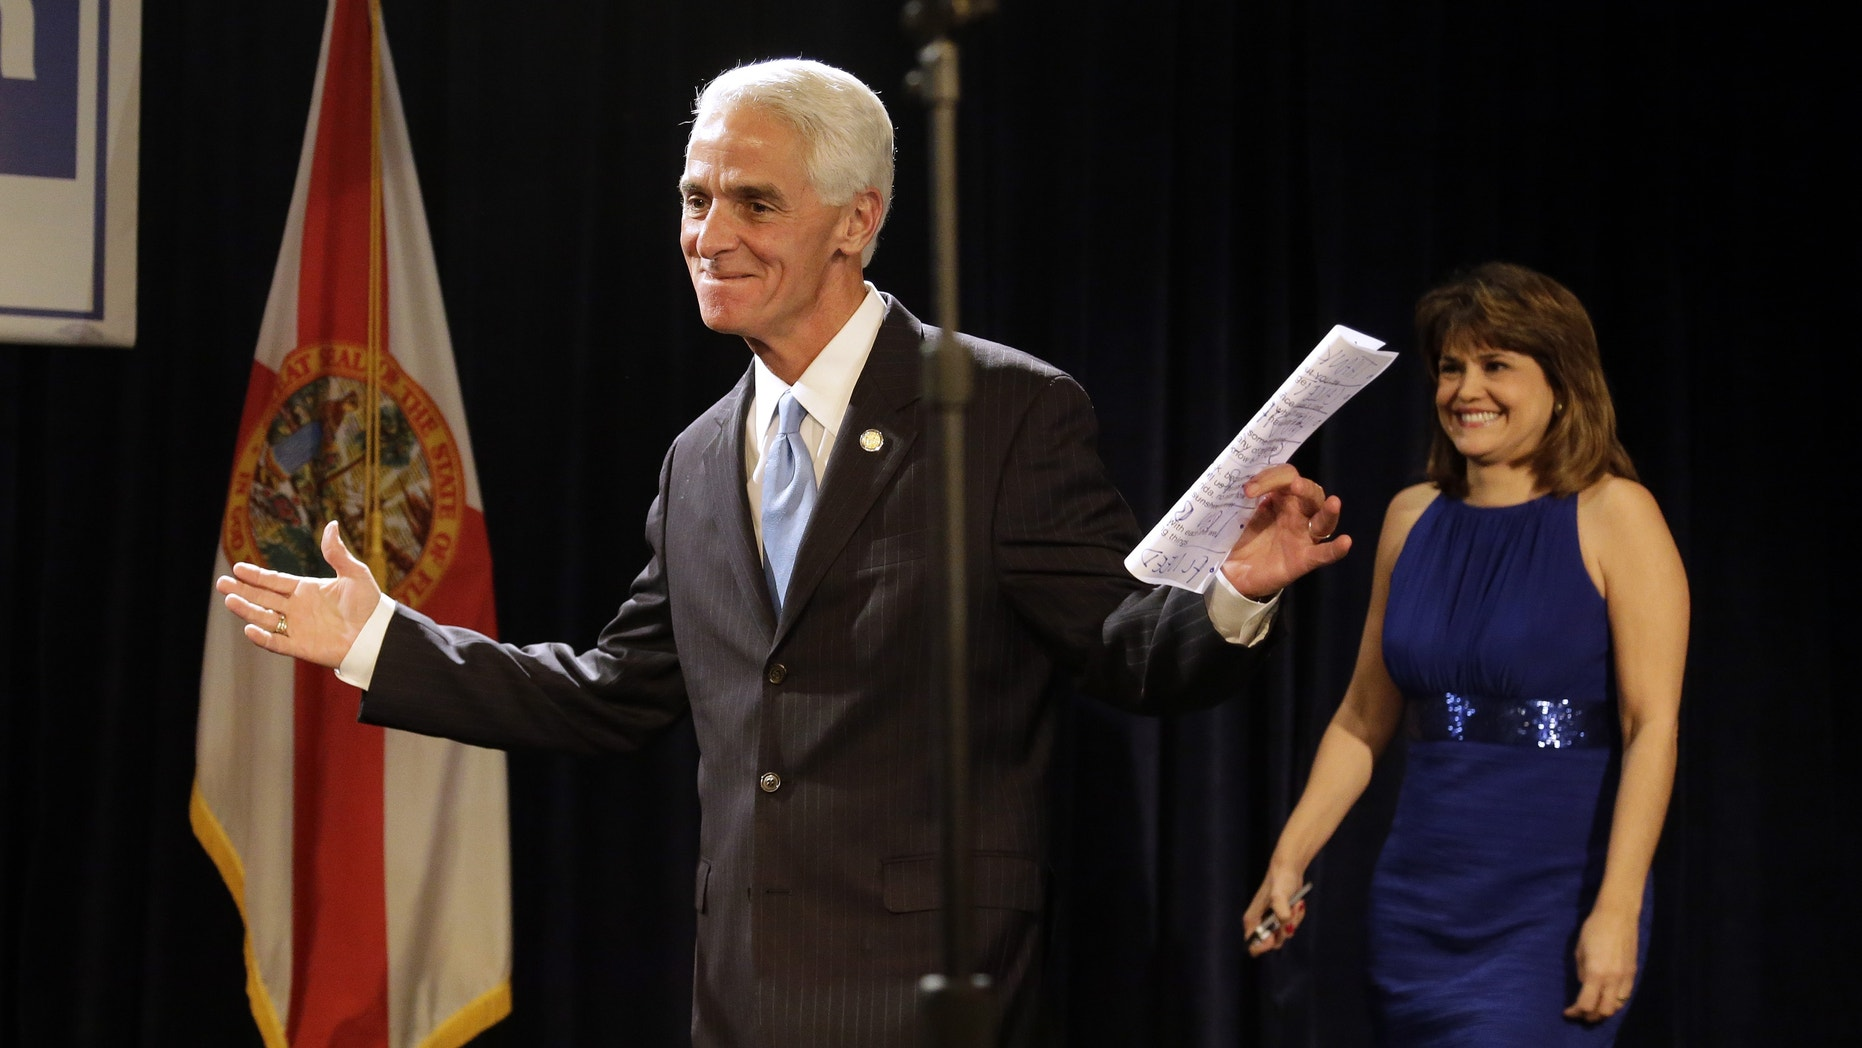 Charlie Crist delivering his concession speech Tuesday, Nov. 4, 2014 in Tampa, Fla.